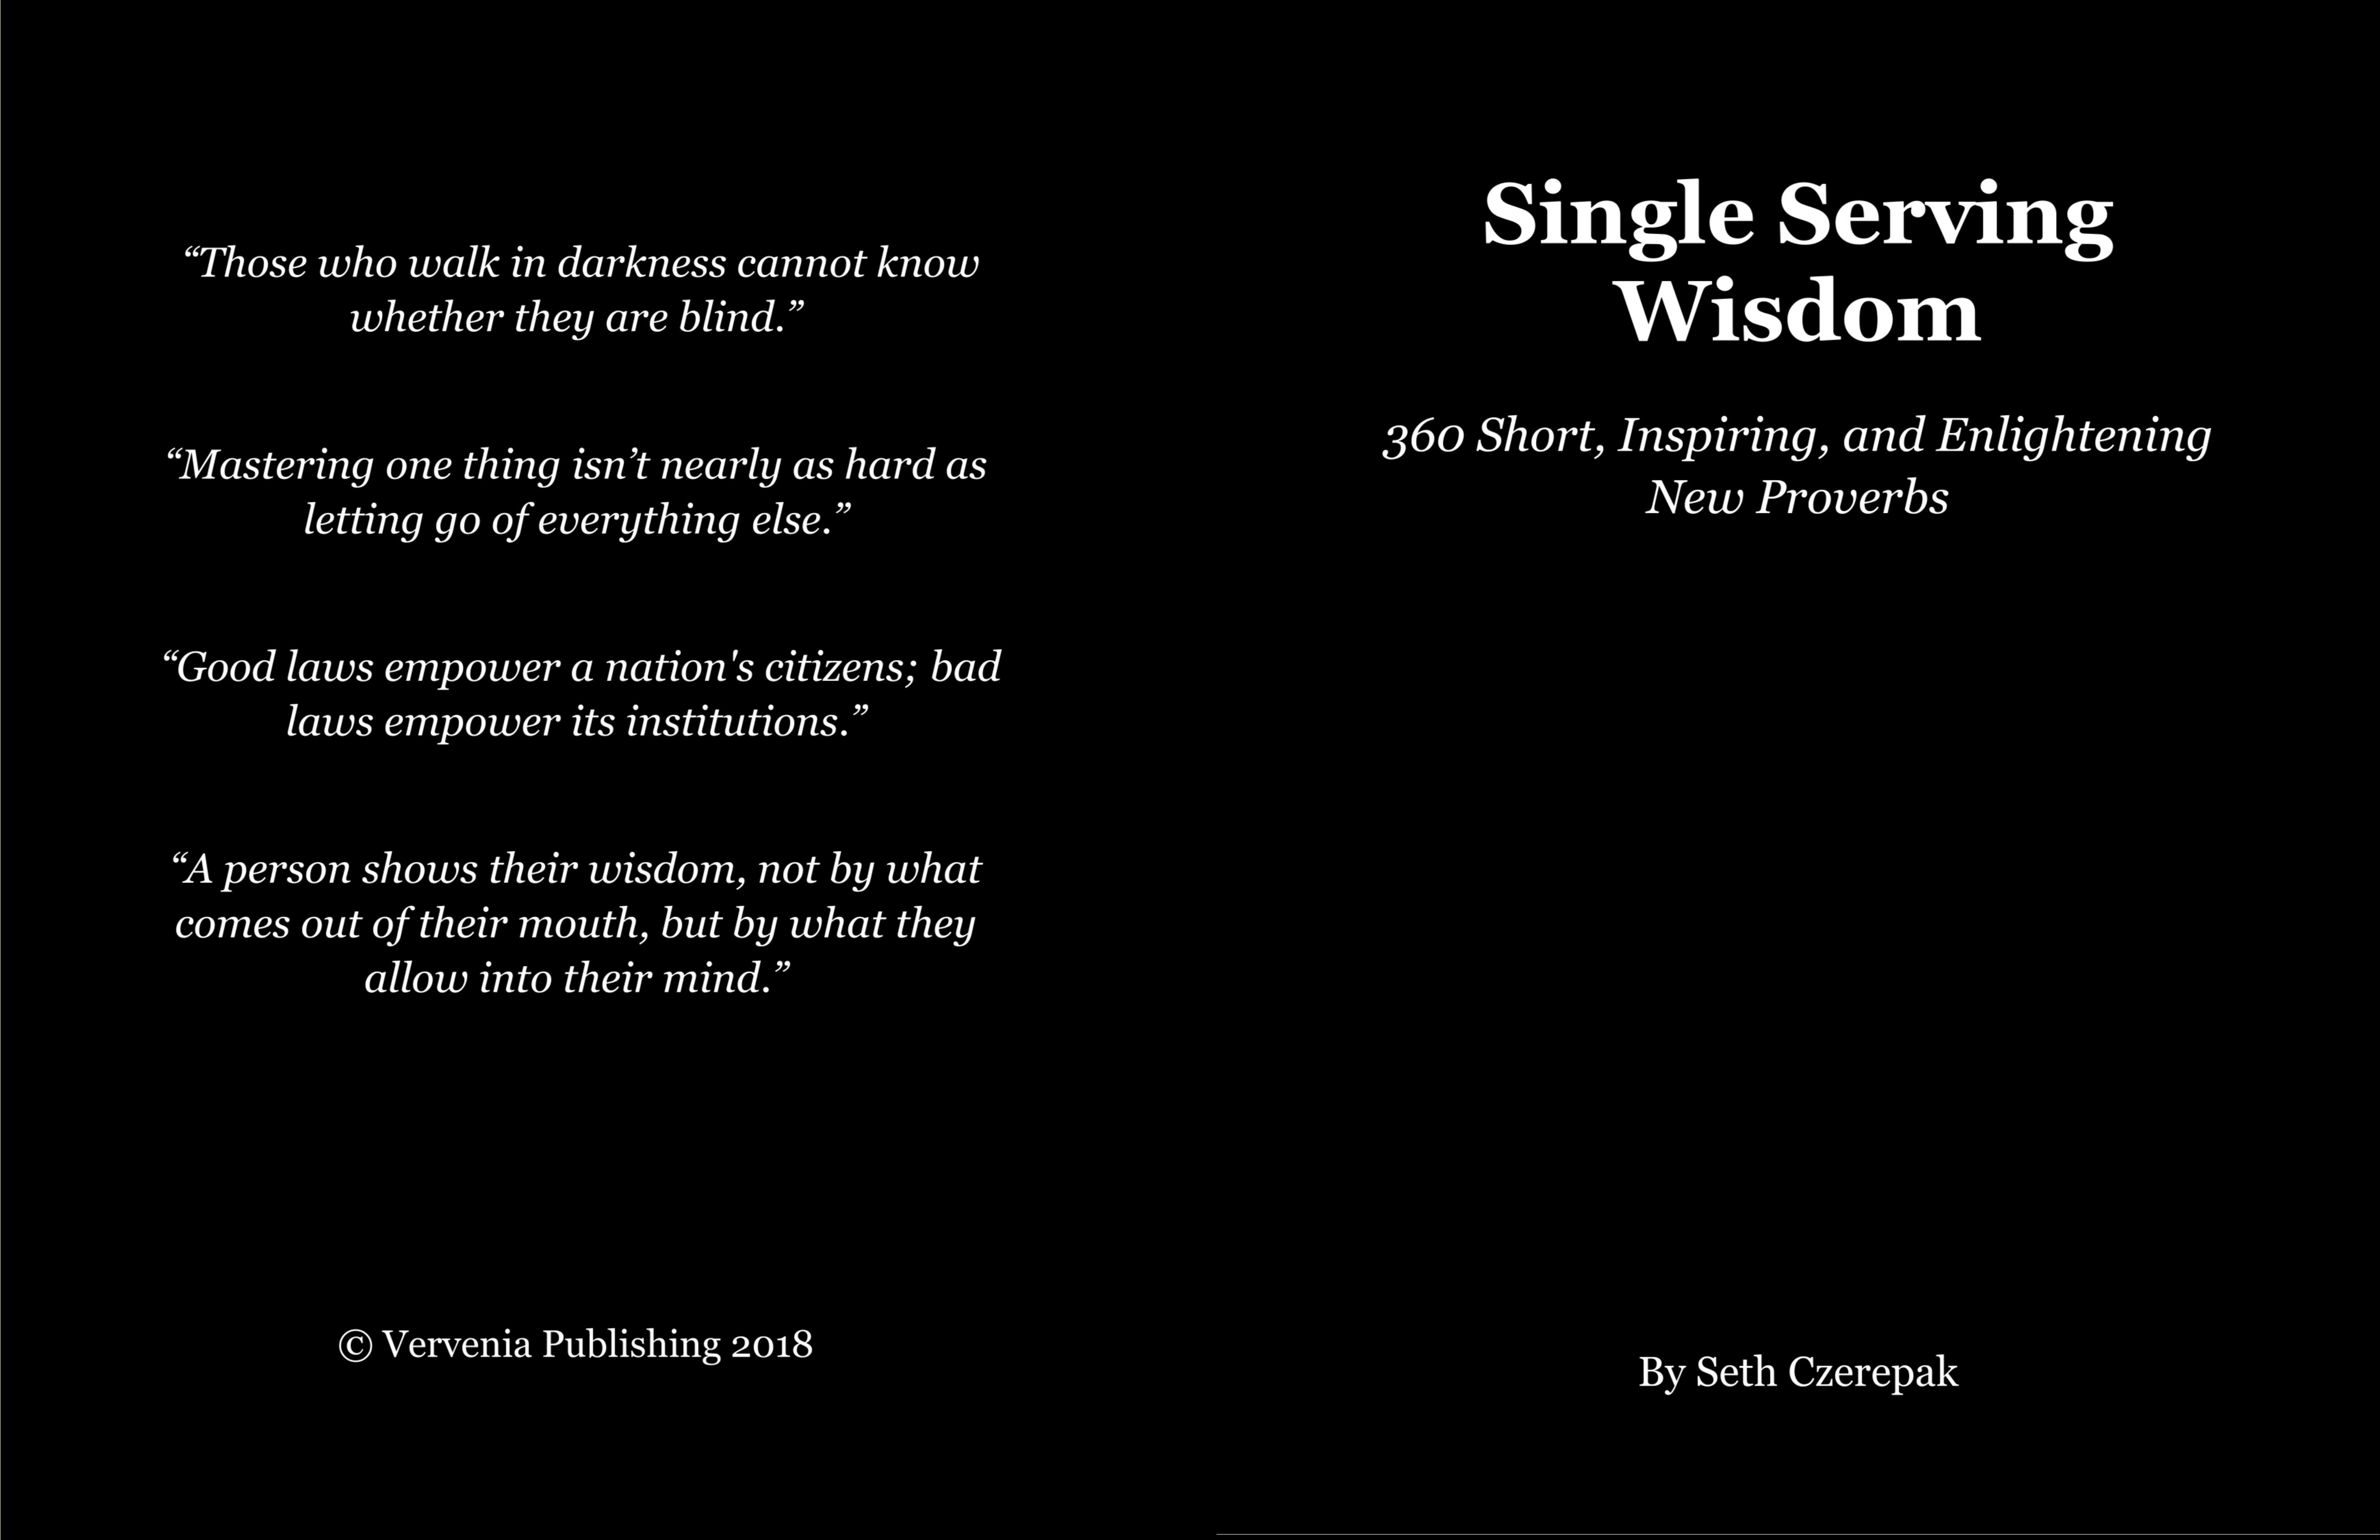 Single Serving Wisdom cover image